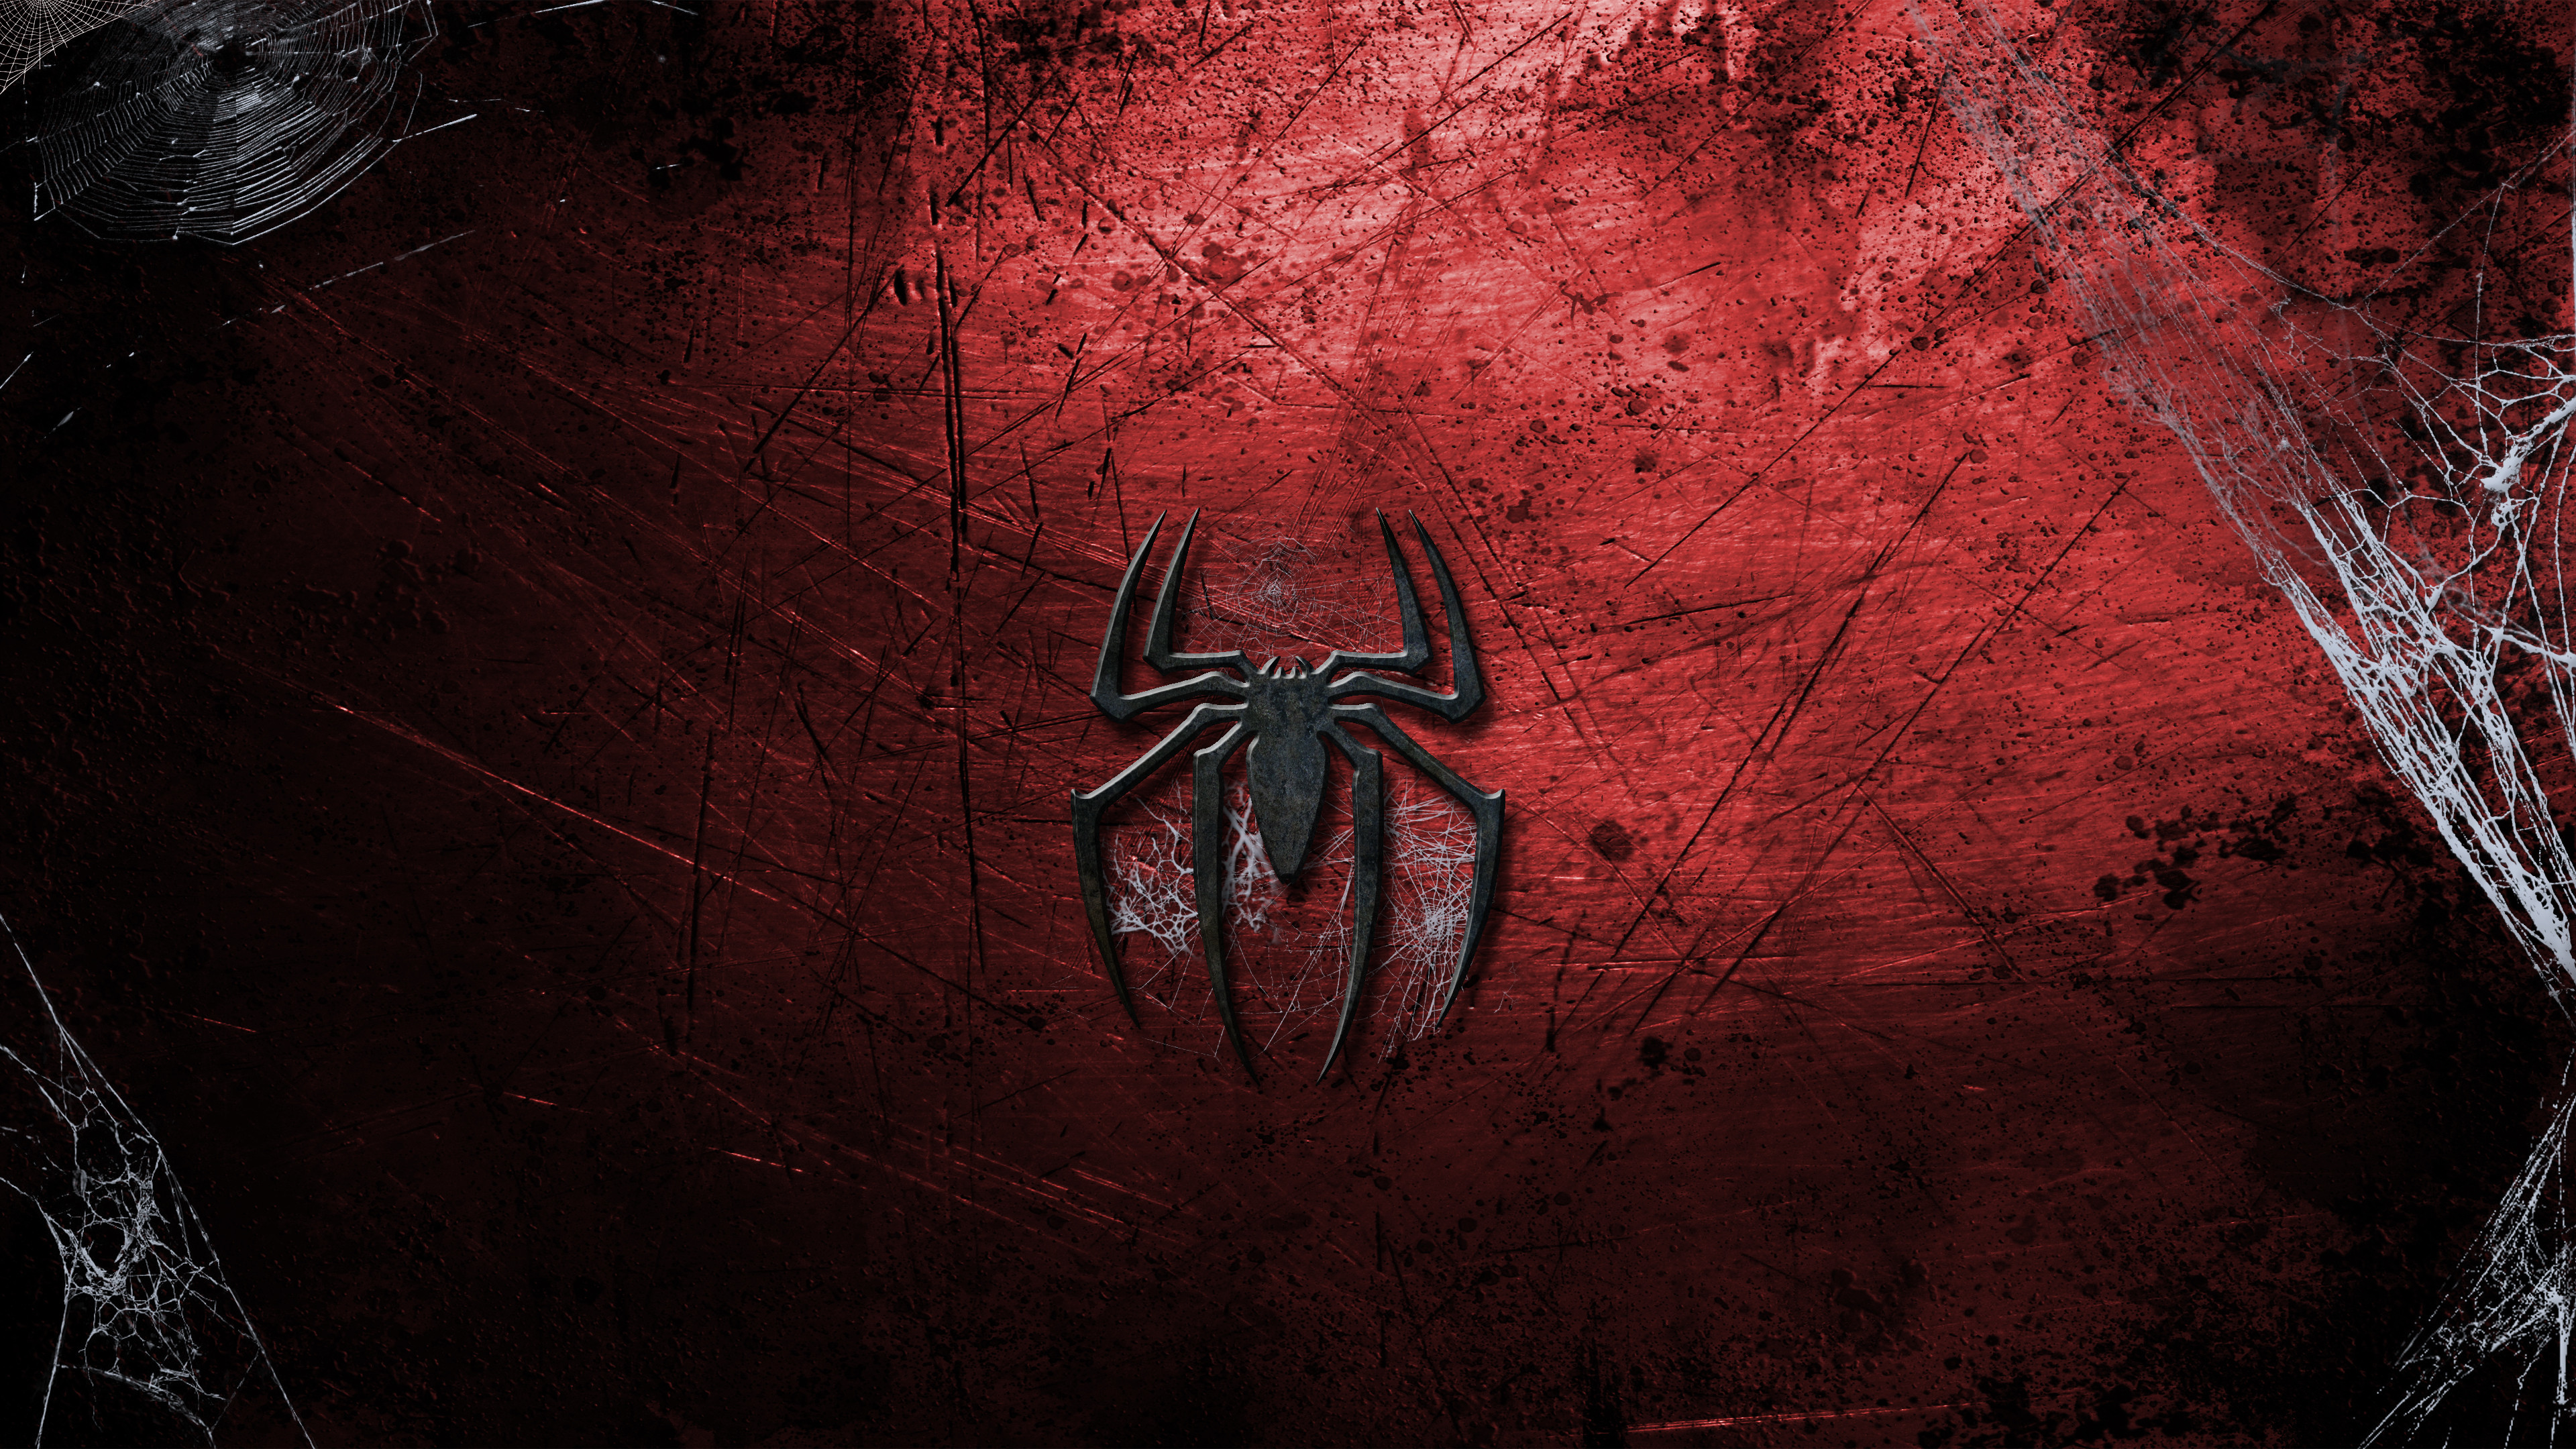 Res: 3840x2160, Spiderman Logo Wallpaper HD Resolution #AQF